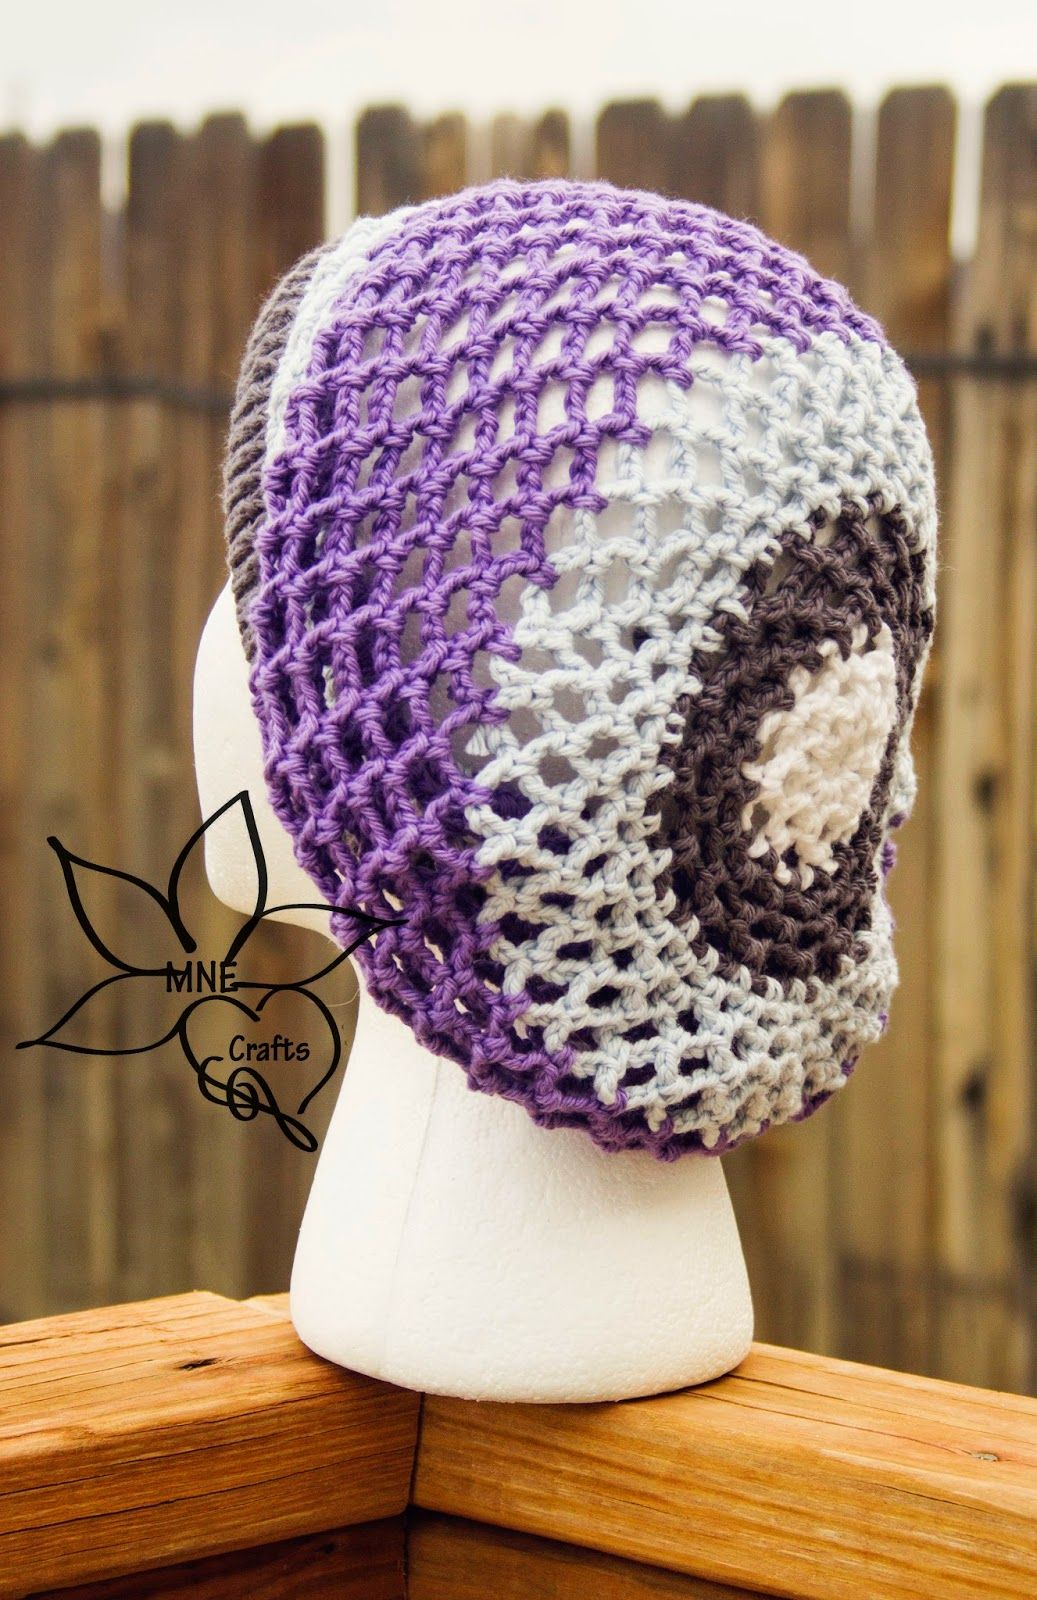 MNE Crafts: Spring Time Slouch Hat | Moogly Community Board ...